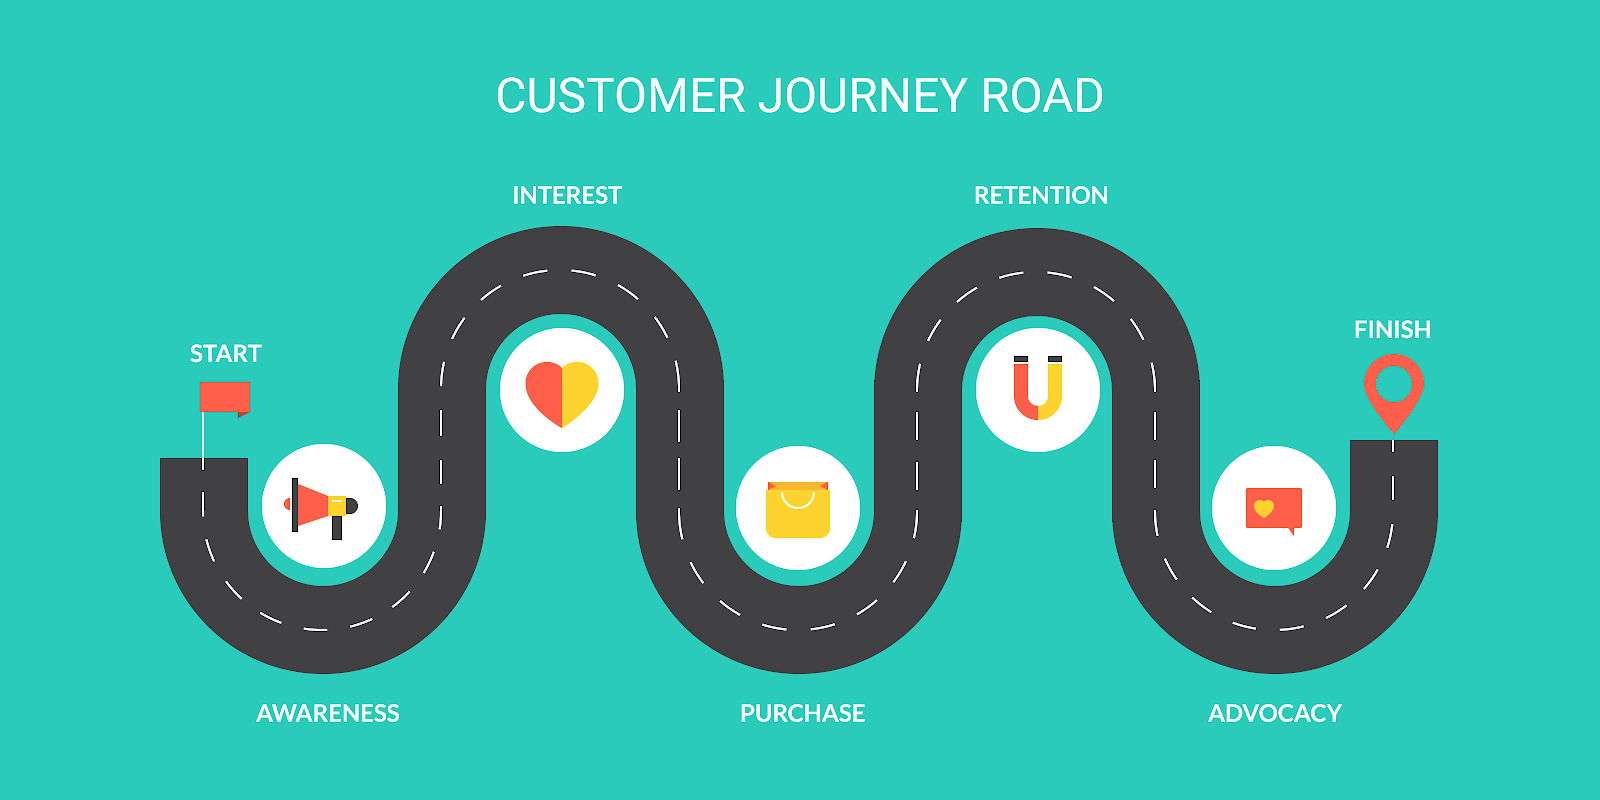 Infographic showing the customer journey road from start to interest to purchase to advocacy